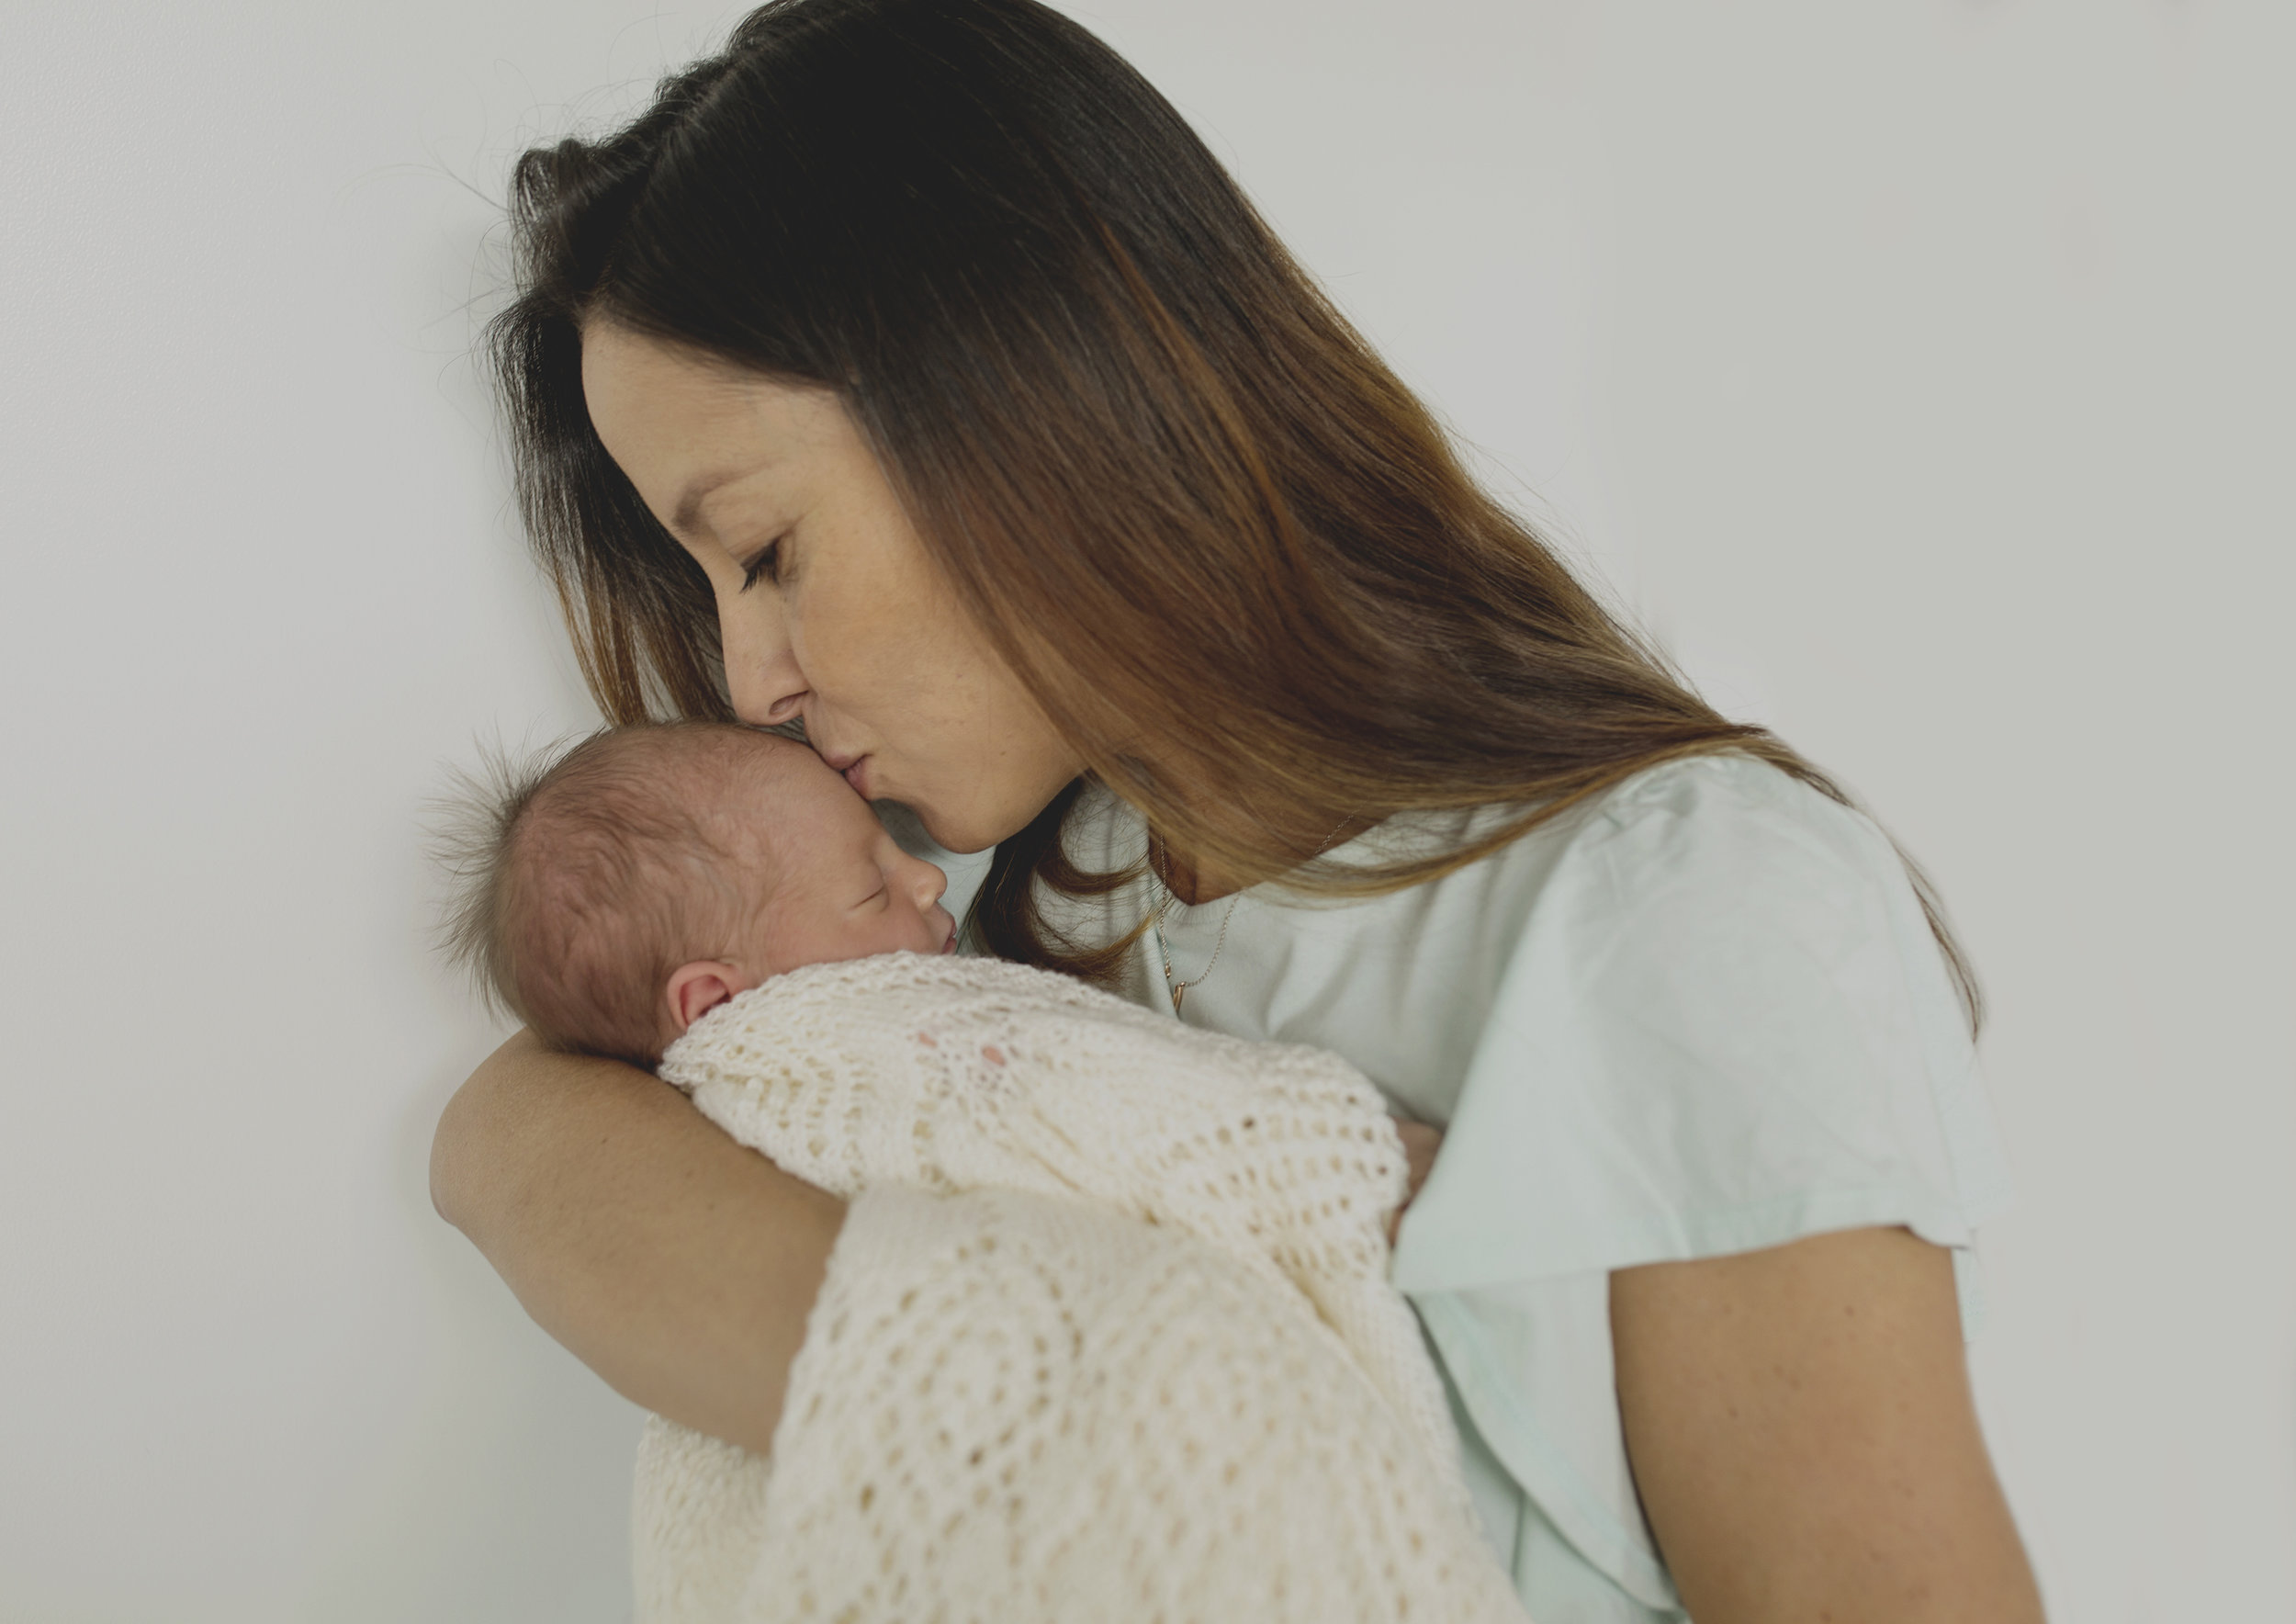 A Mother kissing her newborn baby girl